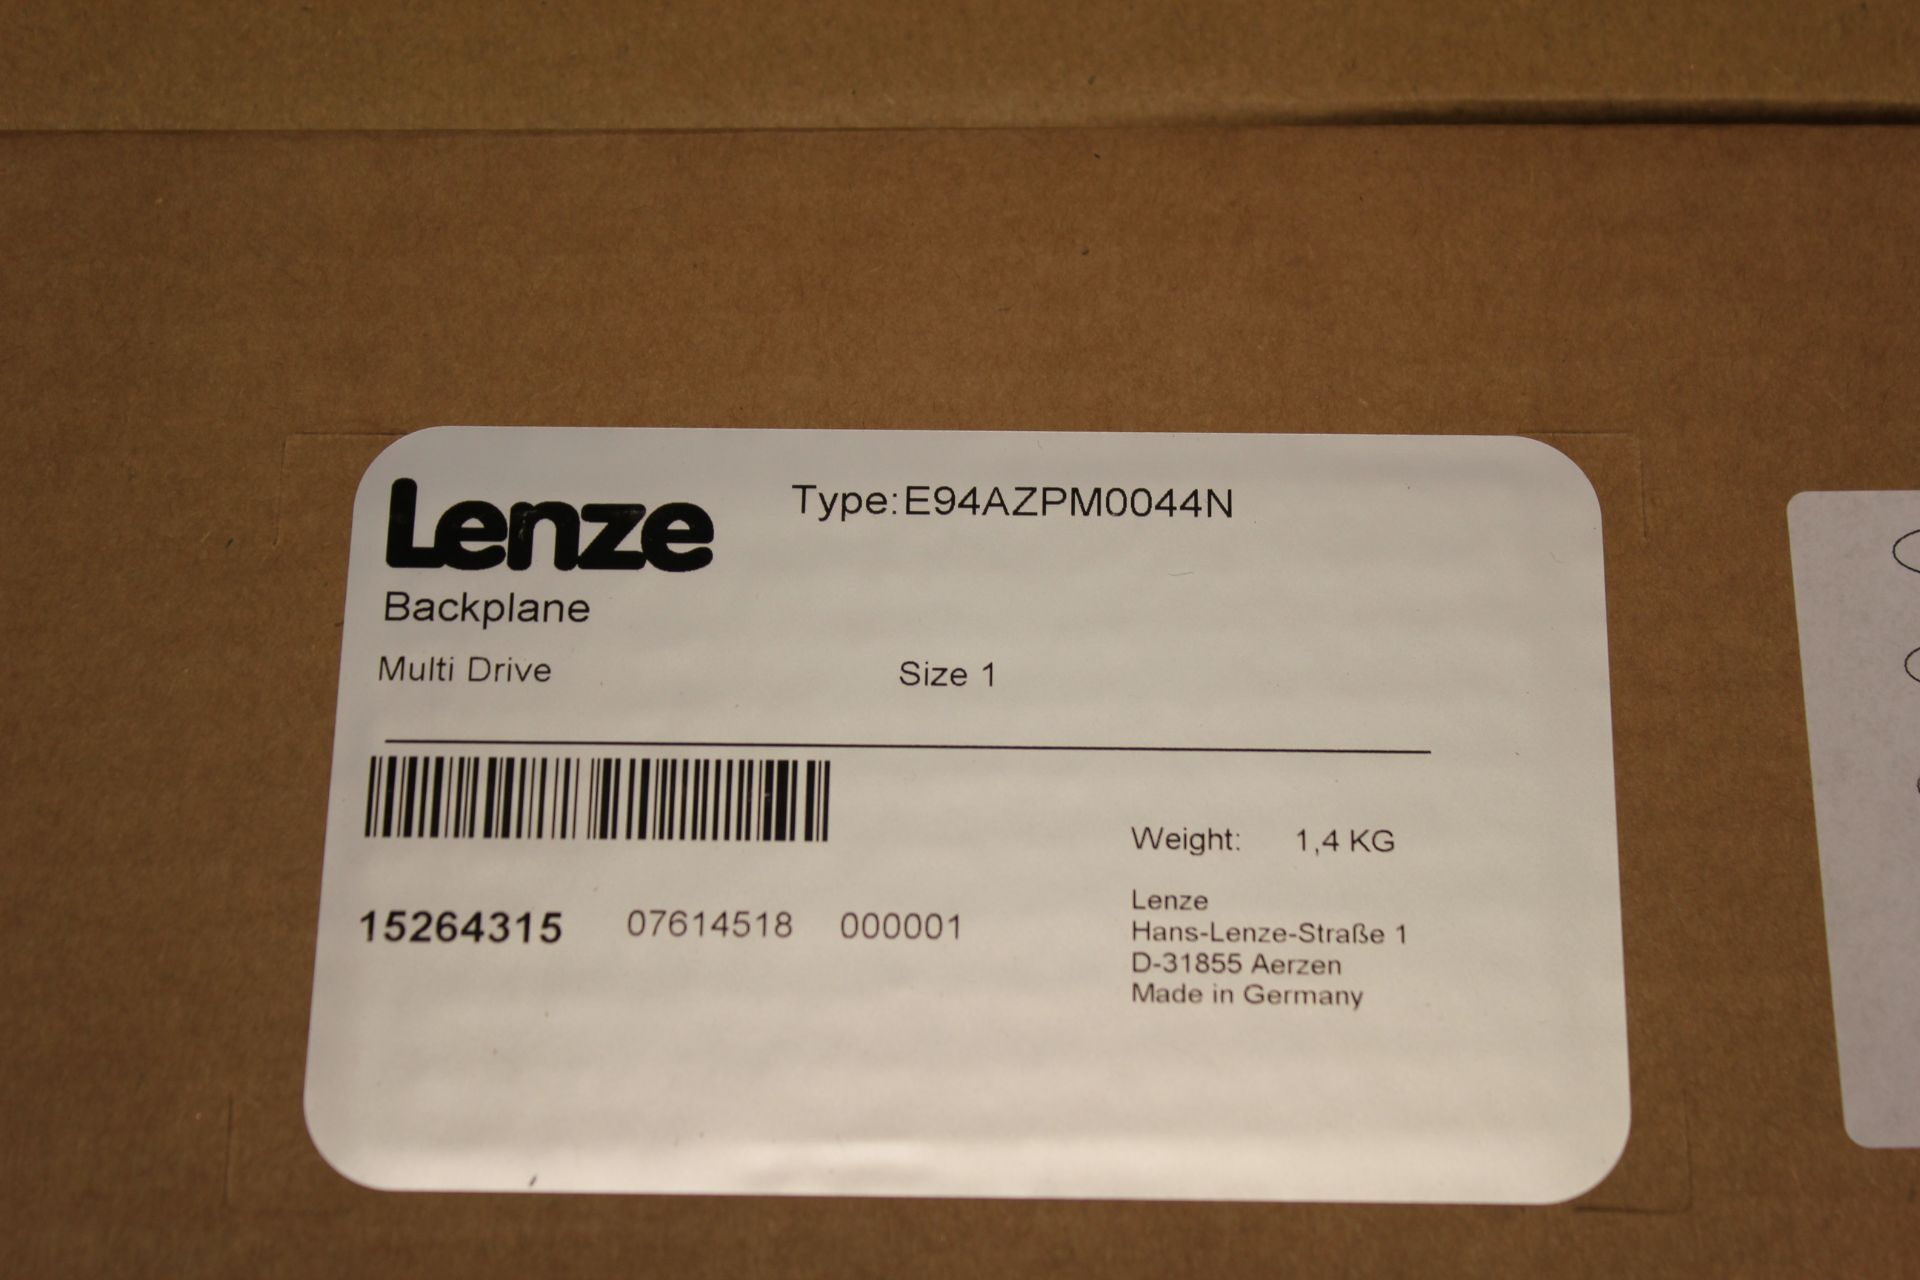 NEW LENZE MULTI DRIVE 9400 SERVO DRIVE WITH BACKPLANE - Image 4 of 11